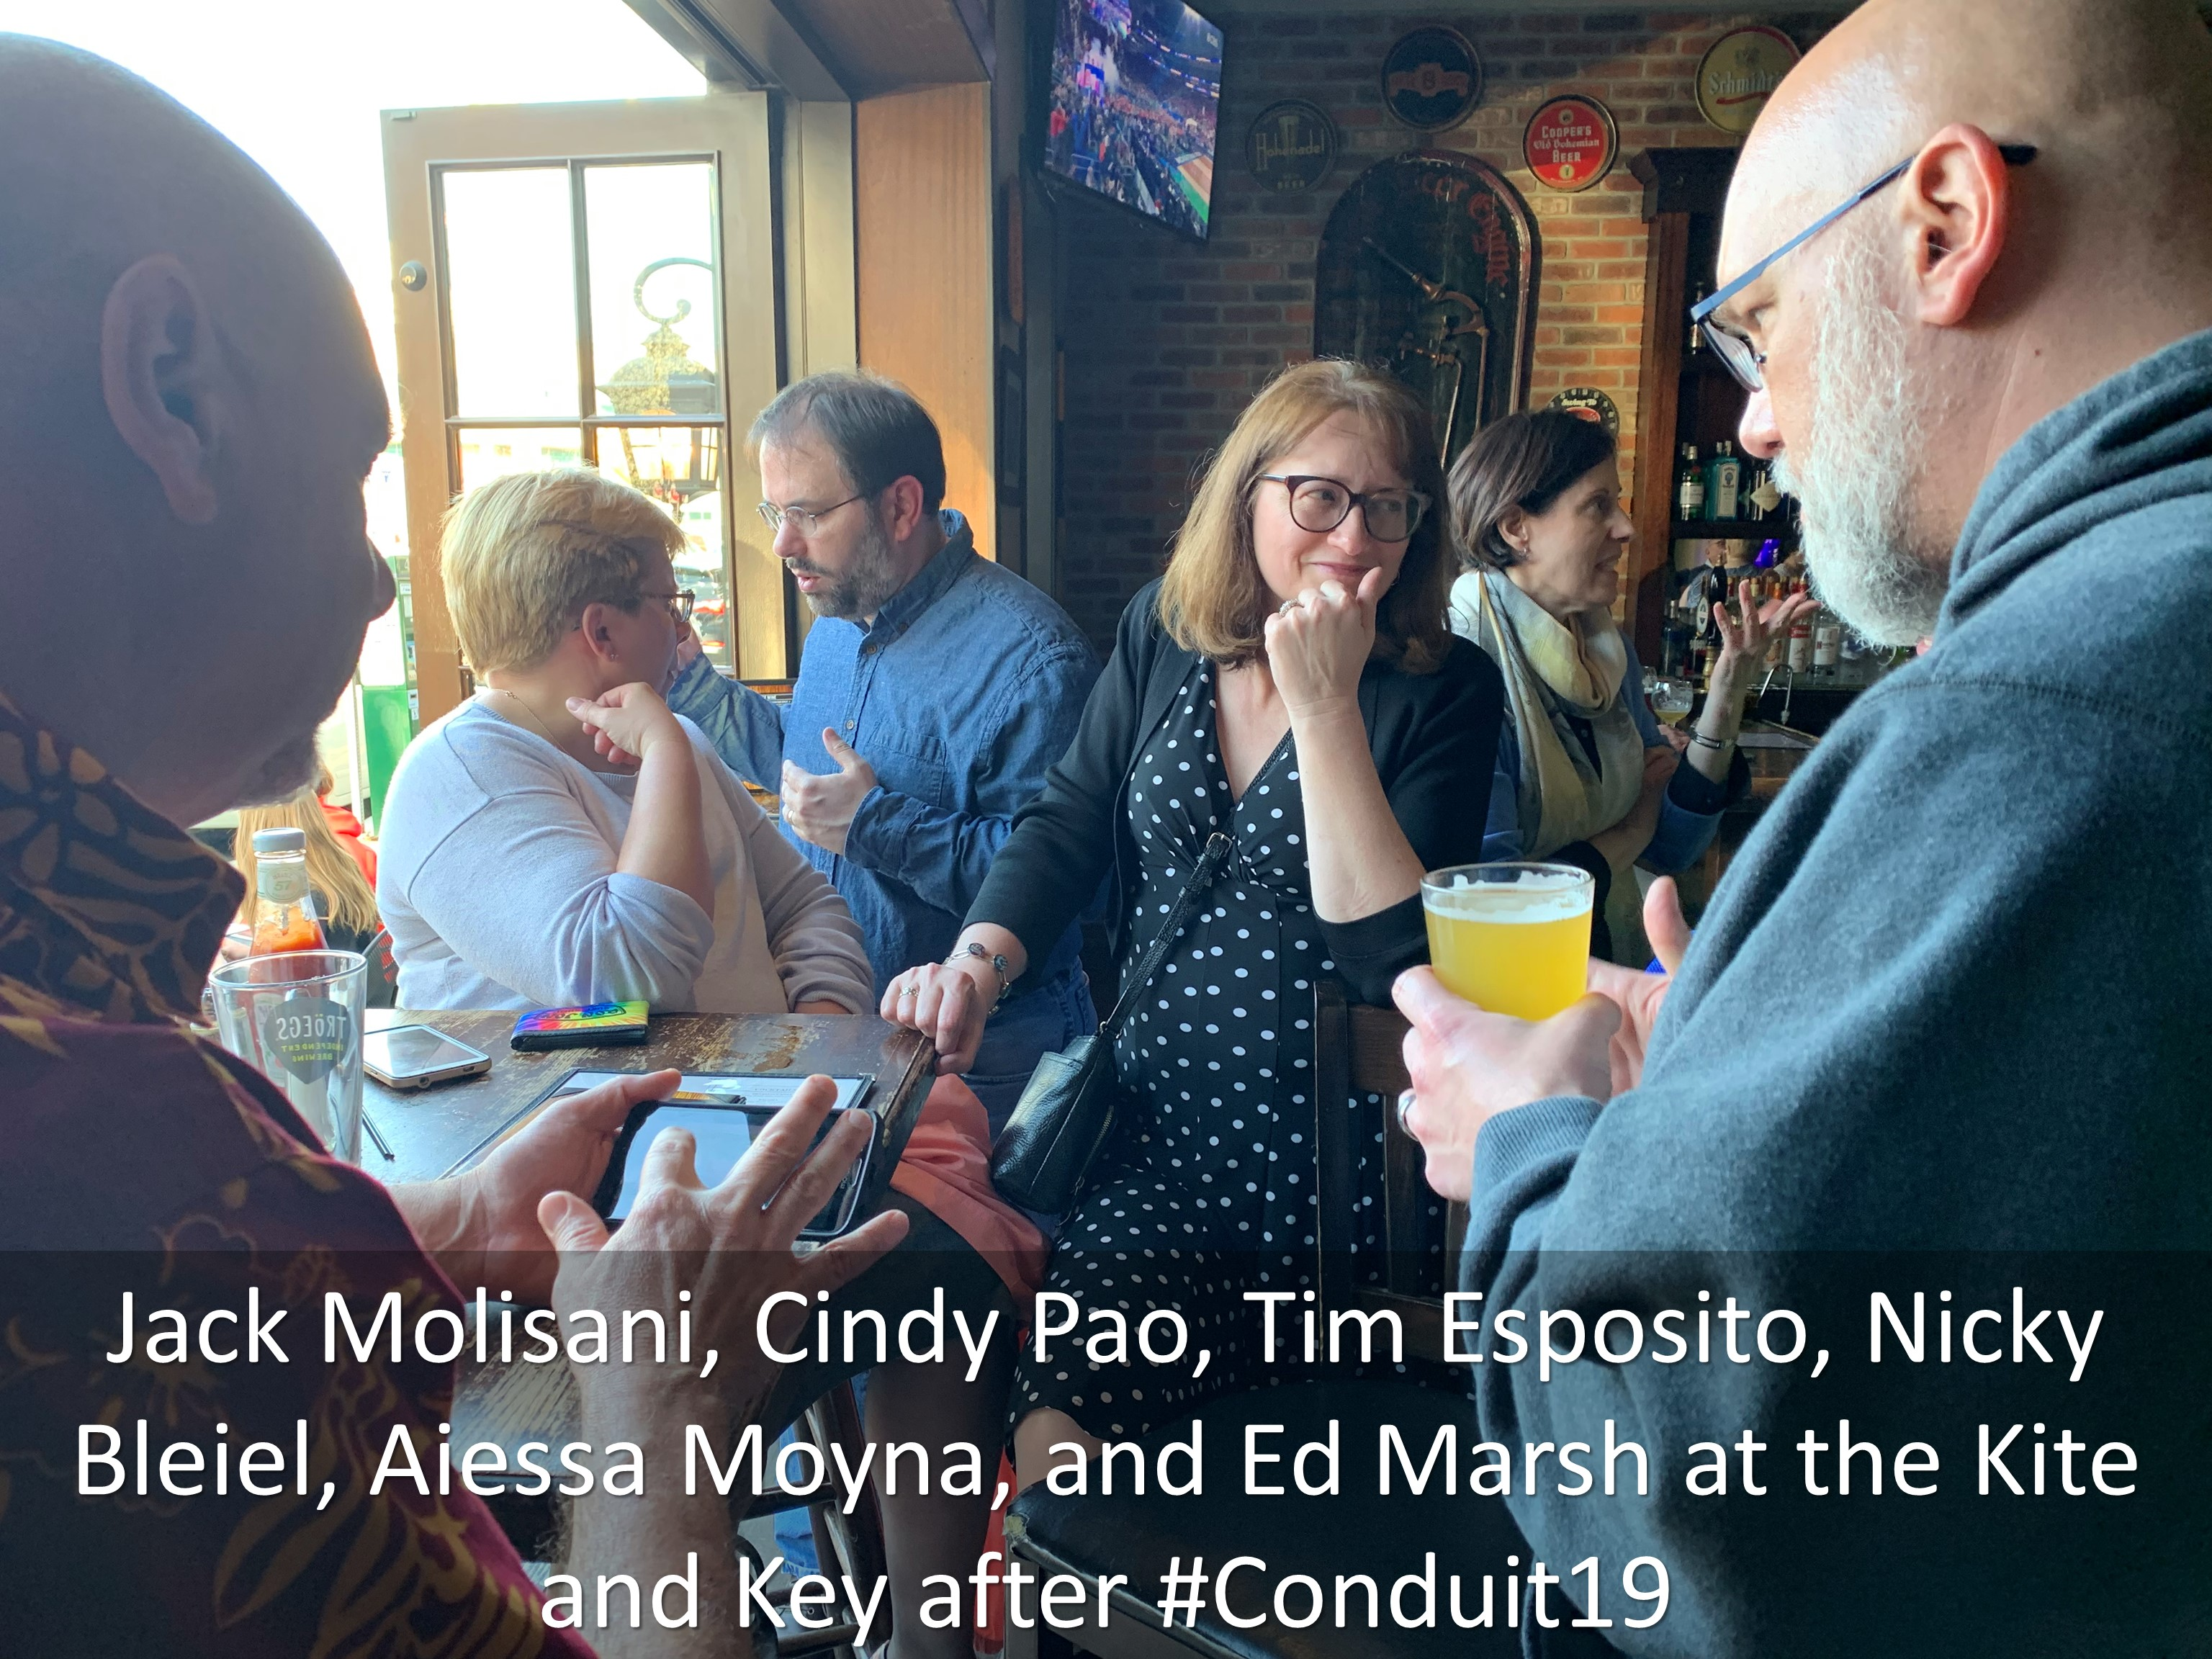 22 Jack Molisani Cindy Pao Tim Esposito Nicky Bleiel Aiessa Moyna and Ed Marsh at the Kite and Key after Conduit19